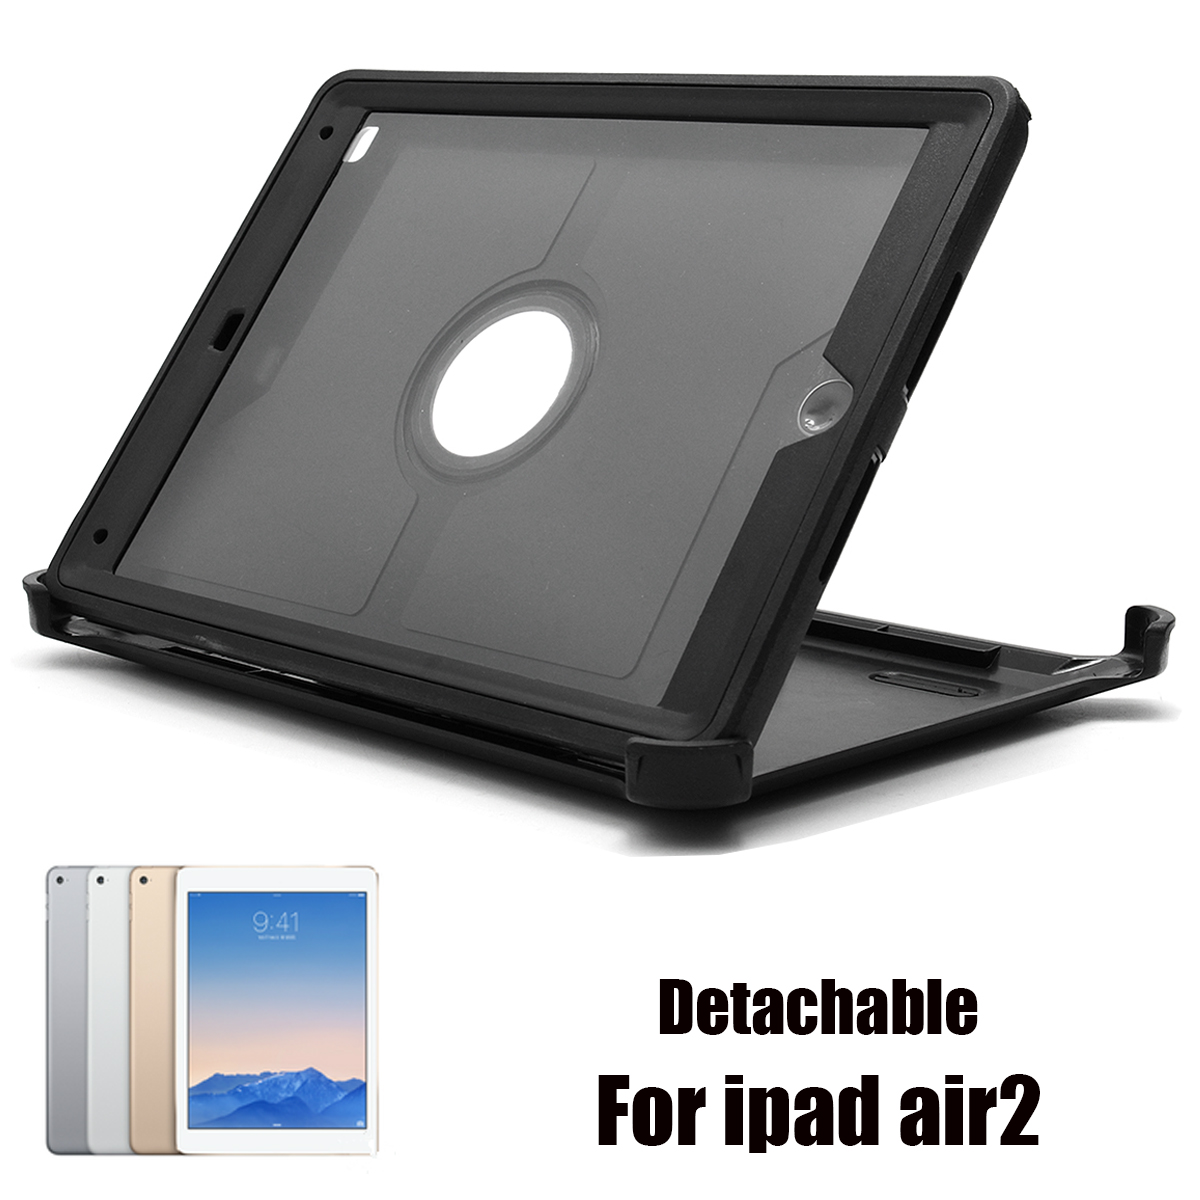 Detachable Adjustable Kickstand Holder Defender Black Hard Protective Case for iPad Air 2